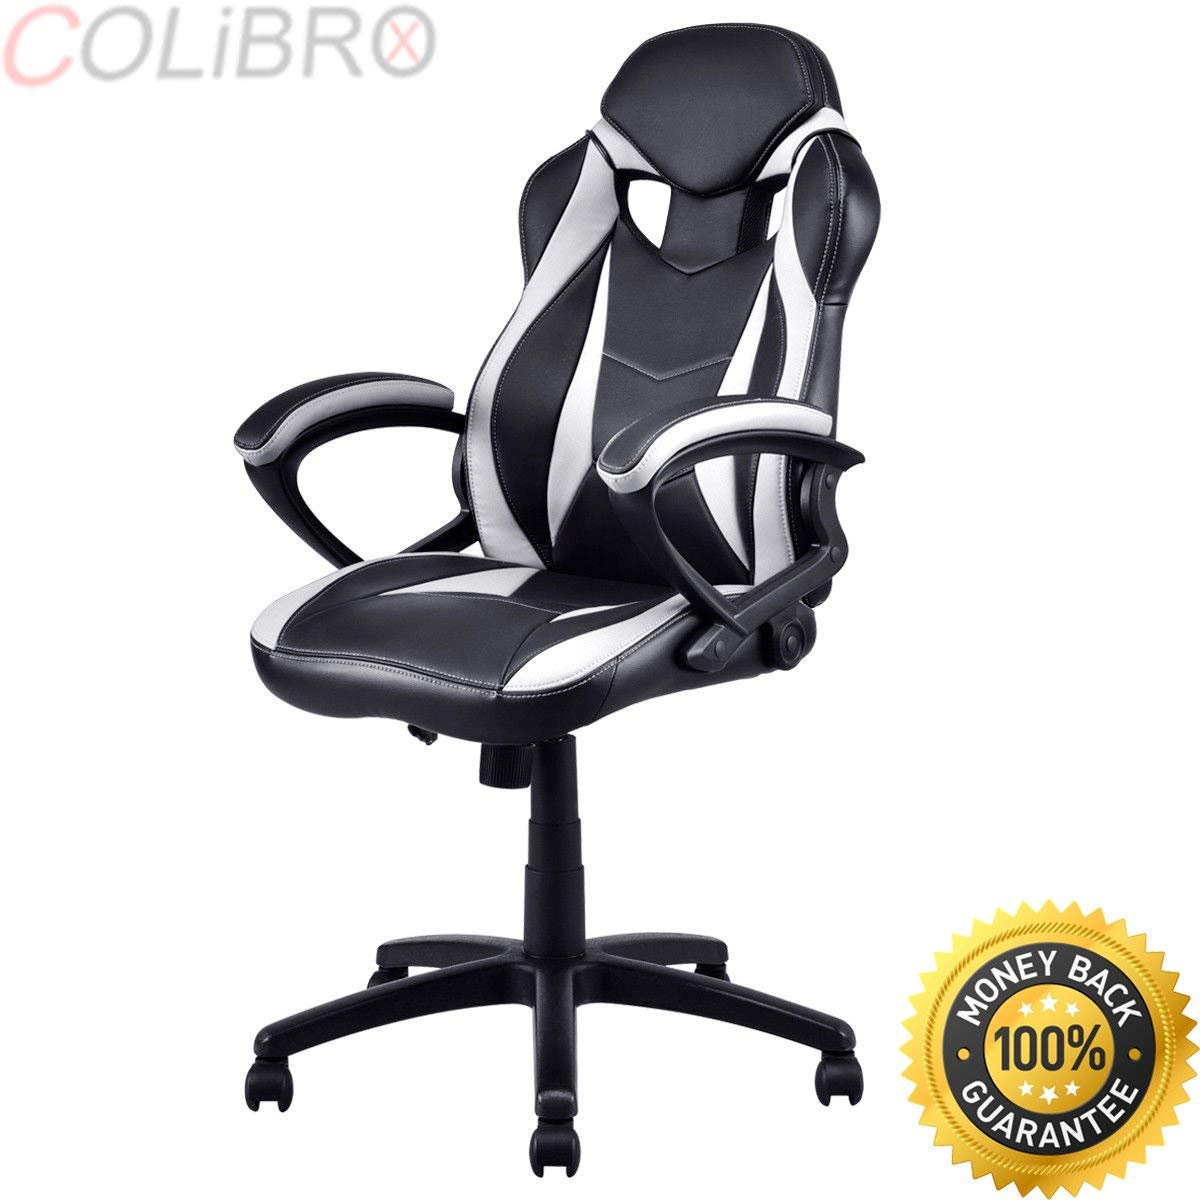 COLIBROX--Executive Race Car Style Chair High Back Bucket Seat Gaming Office Computer New. high back race car style bucket seat office desk chair gaming chair.racing office chair.racing office chair.